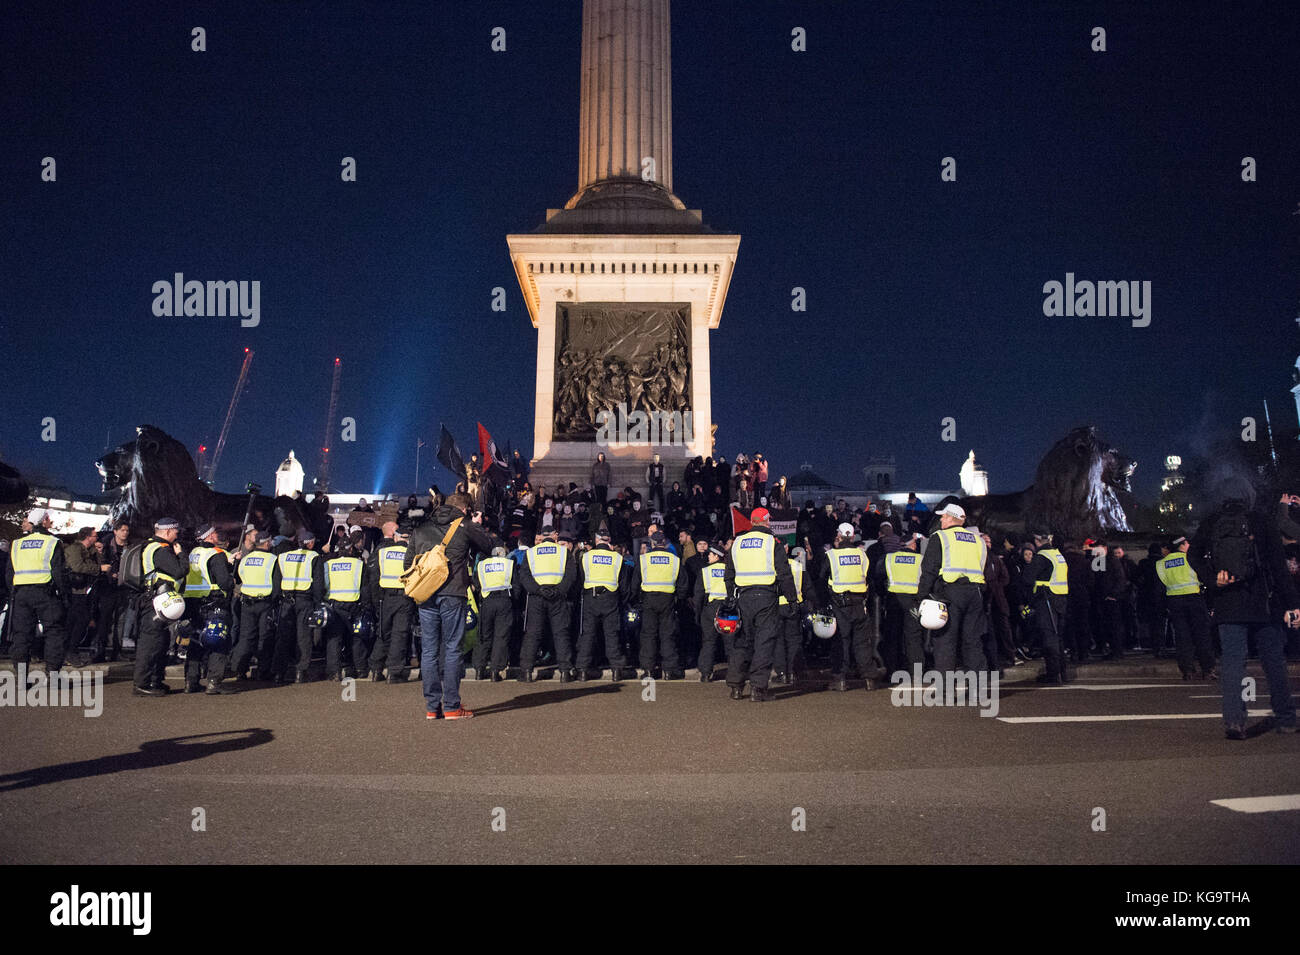 London, United Kingdom. 05th Nov, 2017. Million Mask March 2017 takes place in central London. Police form a cordon Stock Photo